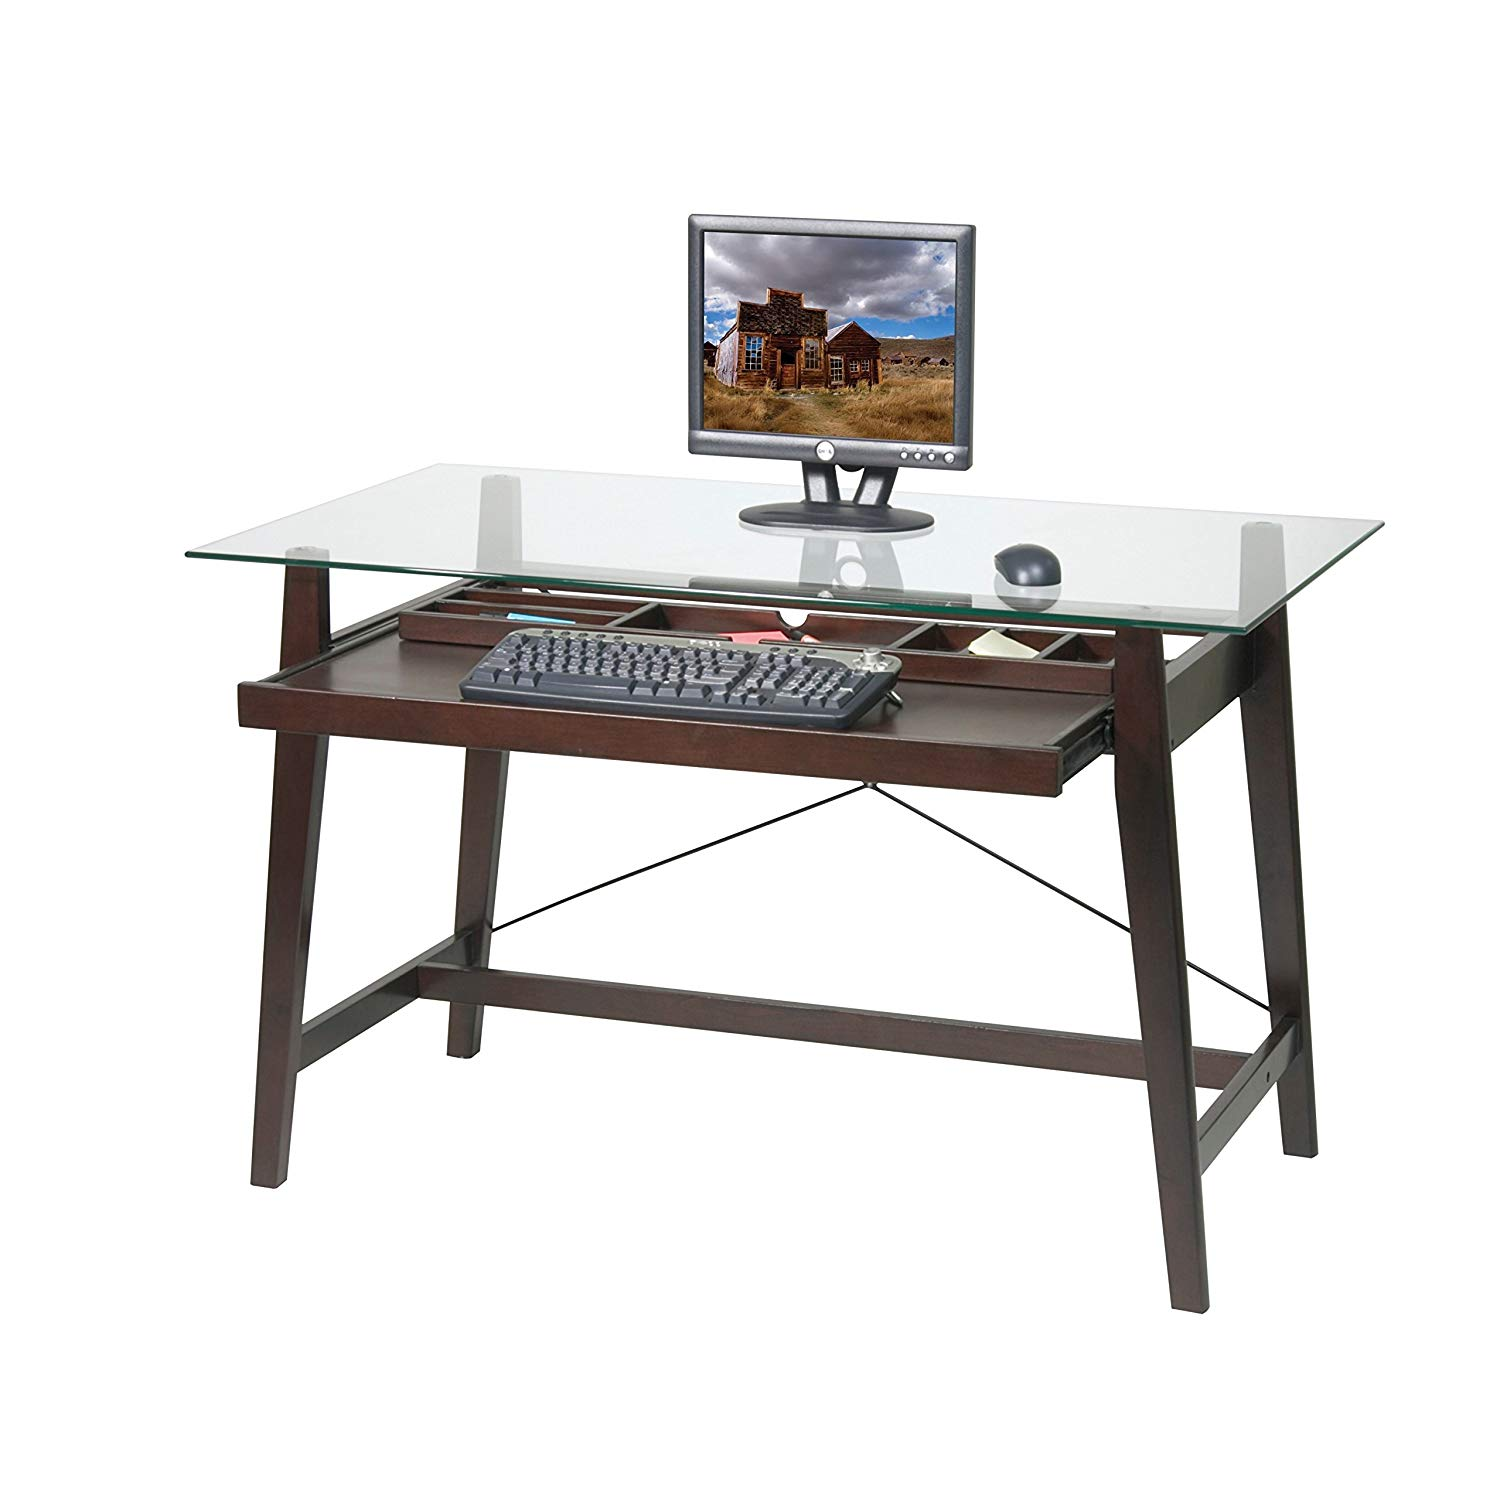 MyEasyShopping Tribeca 42-inch Espresso Glass-top Computer Desk Computer Glass Top Desk Laptop